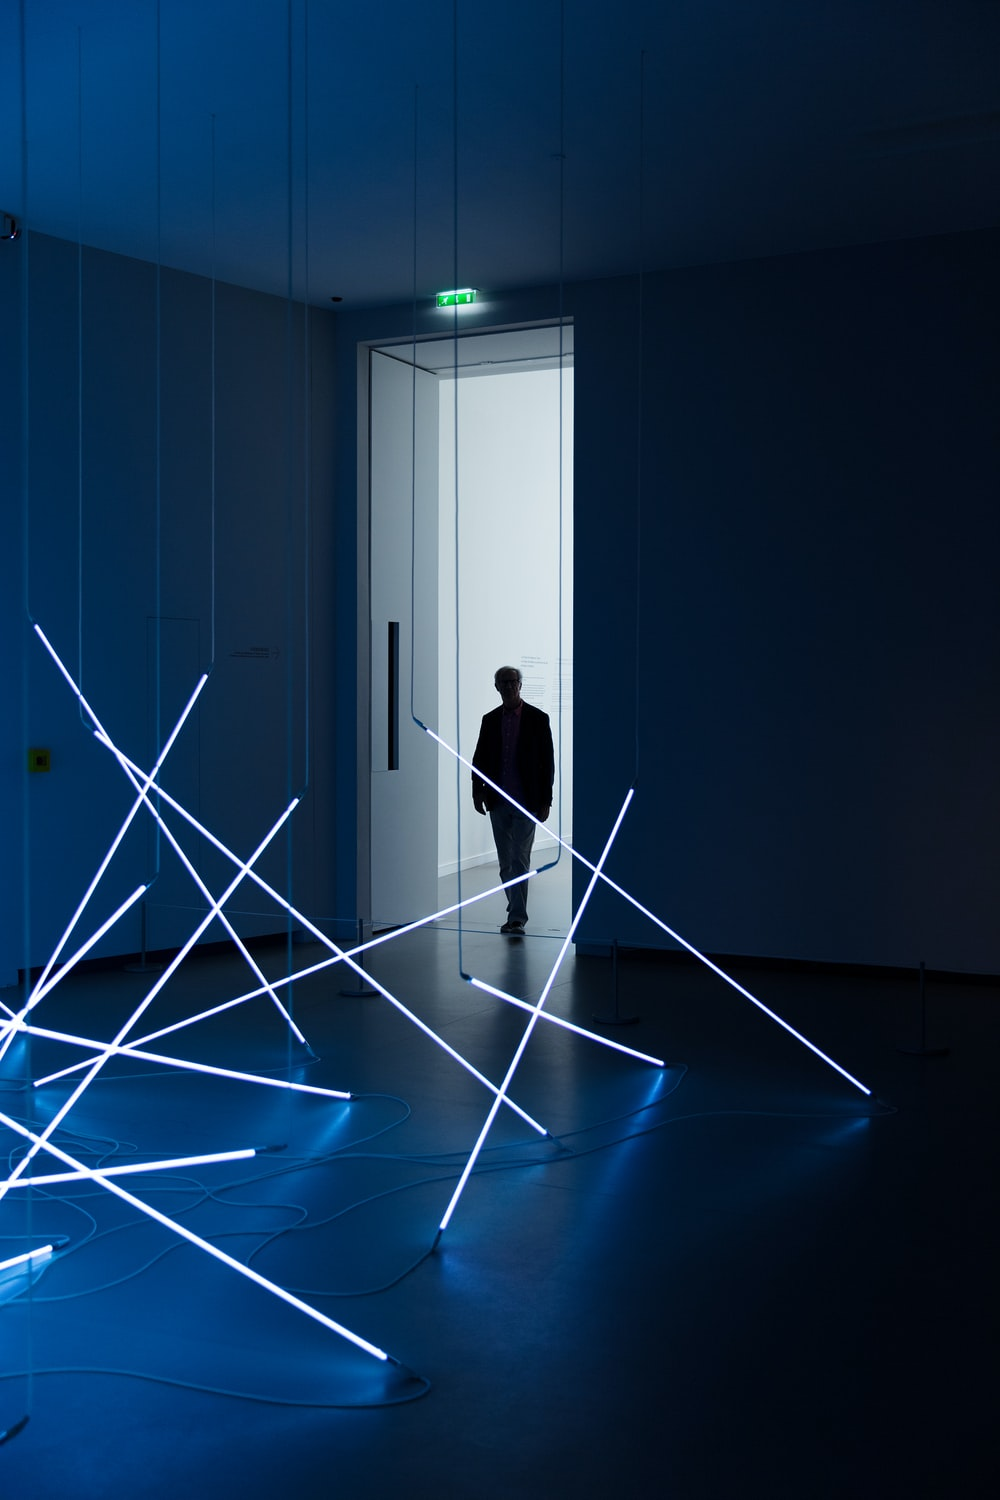 person at a white room with flourescent lights